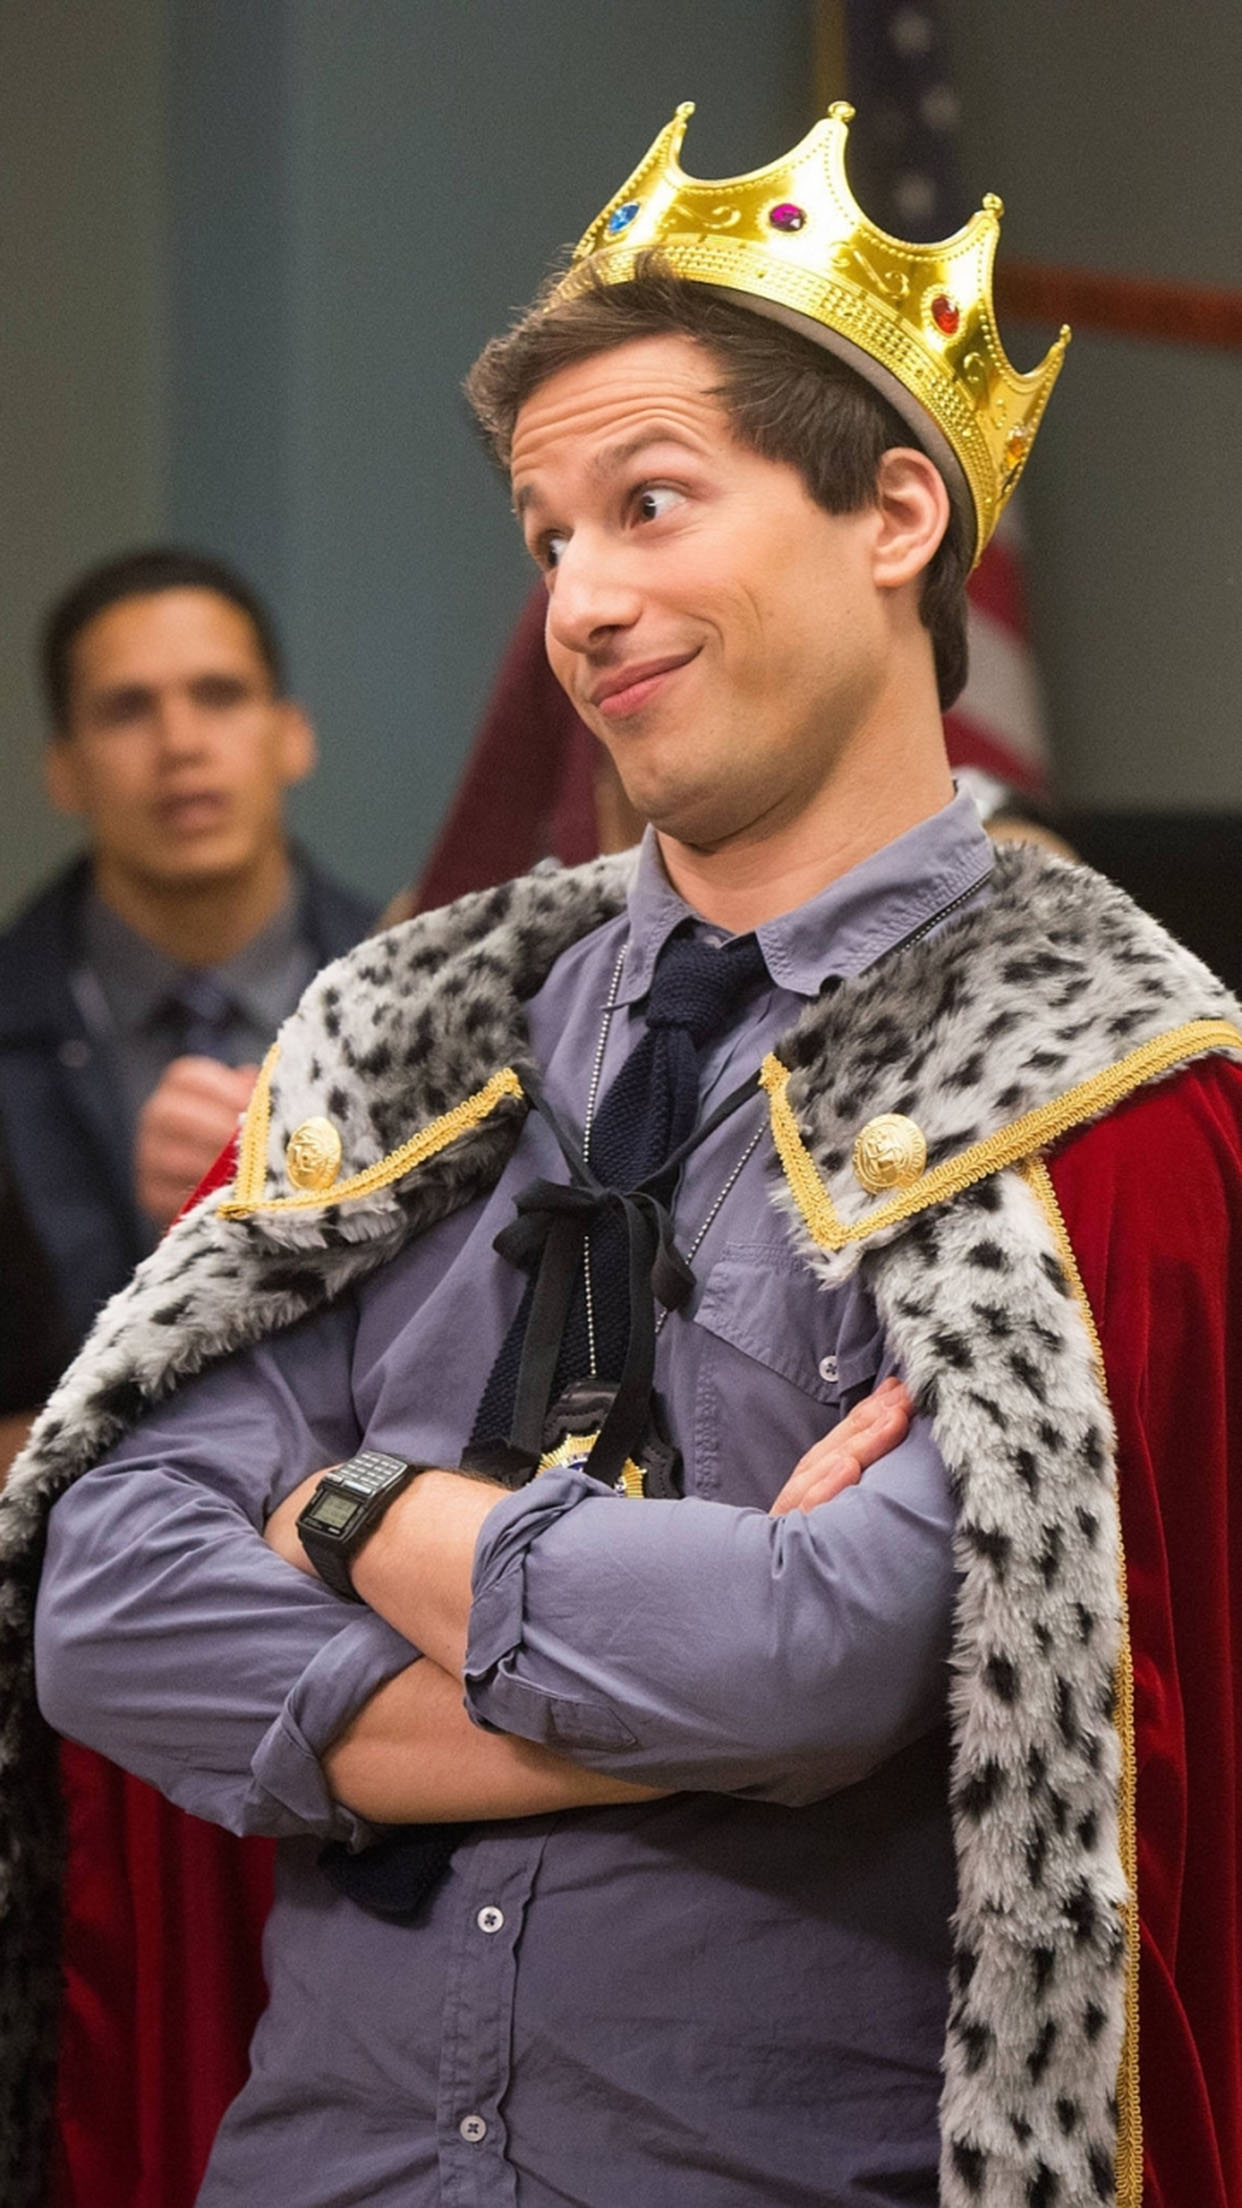 Brooklyn Nine Nine Andy Samberg 3Wallpapers iPhone Parallax 3Wallpapers : notre sélection de fonds d'écran du 01/12/2016